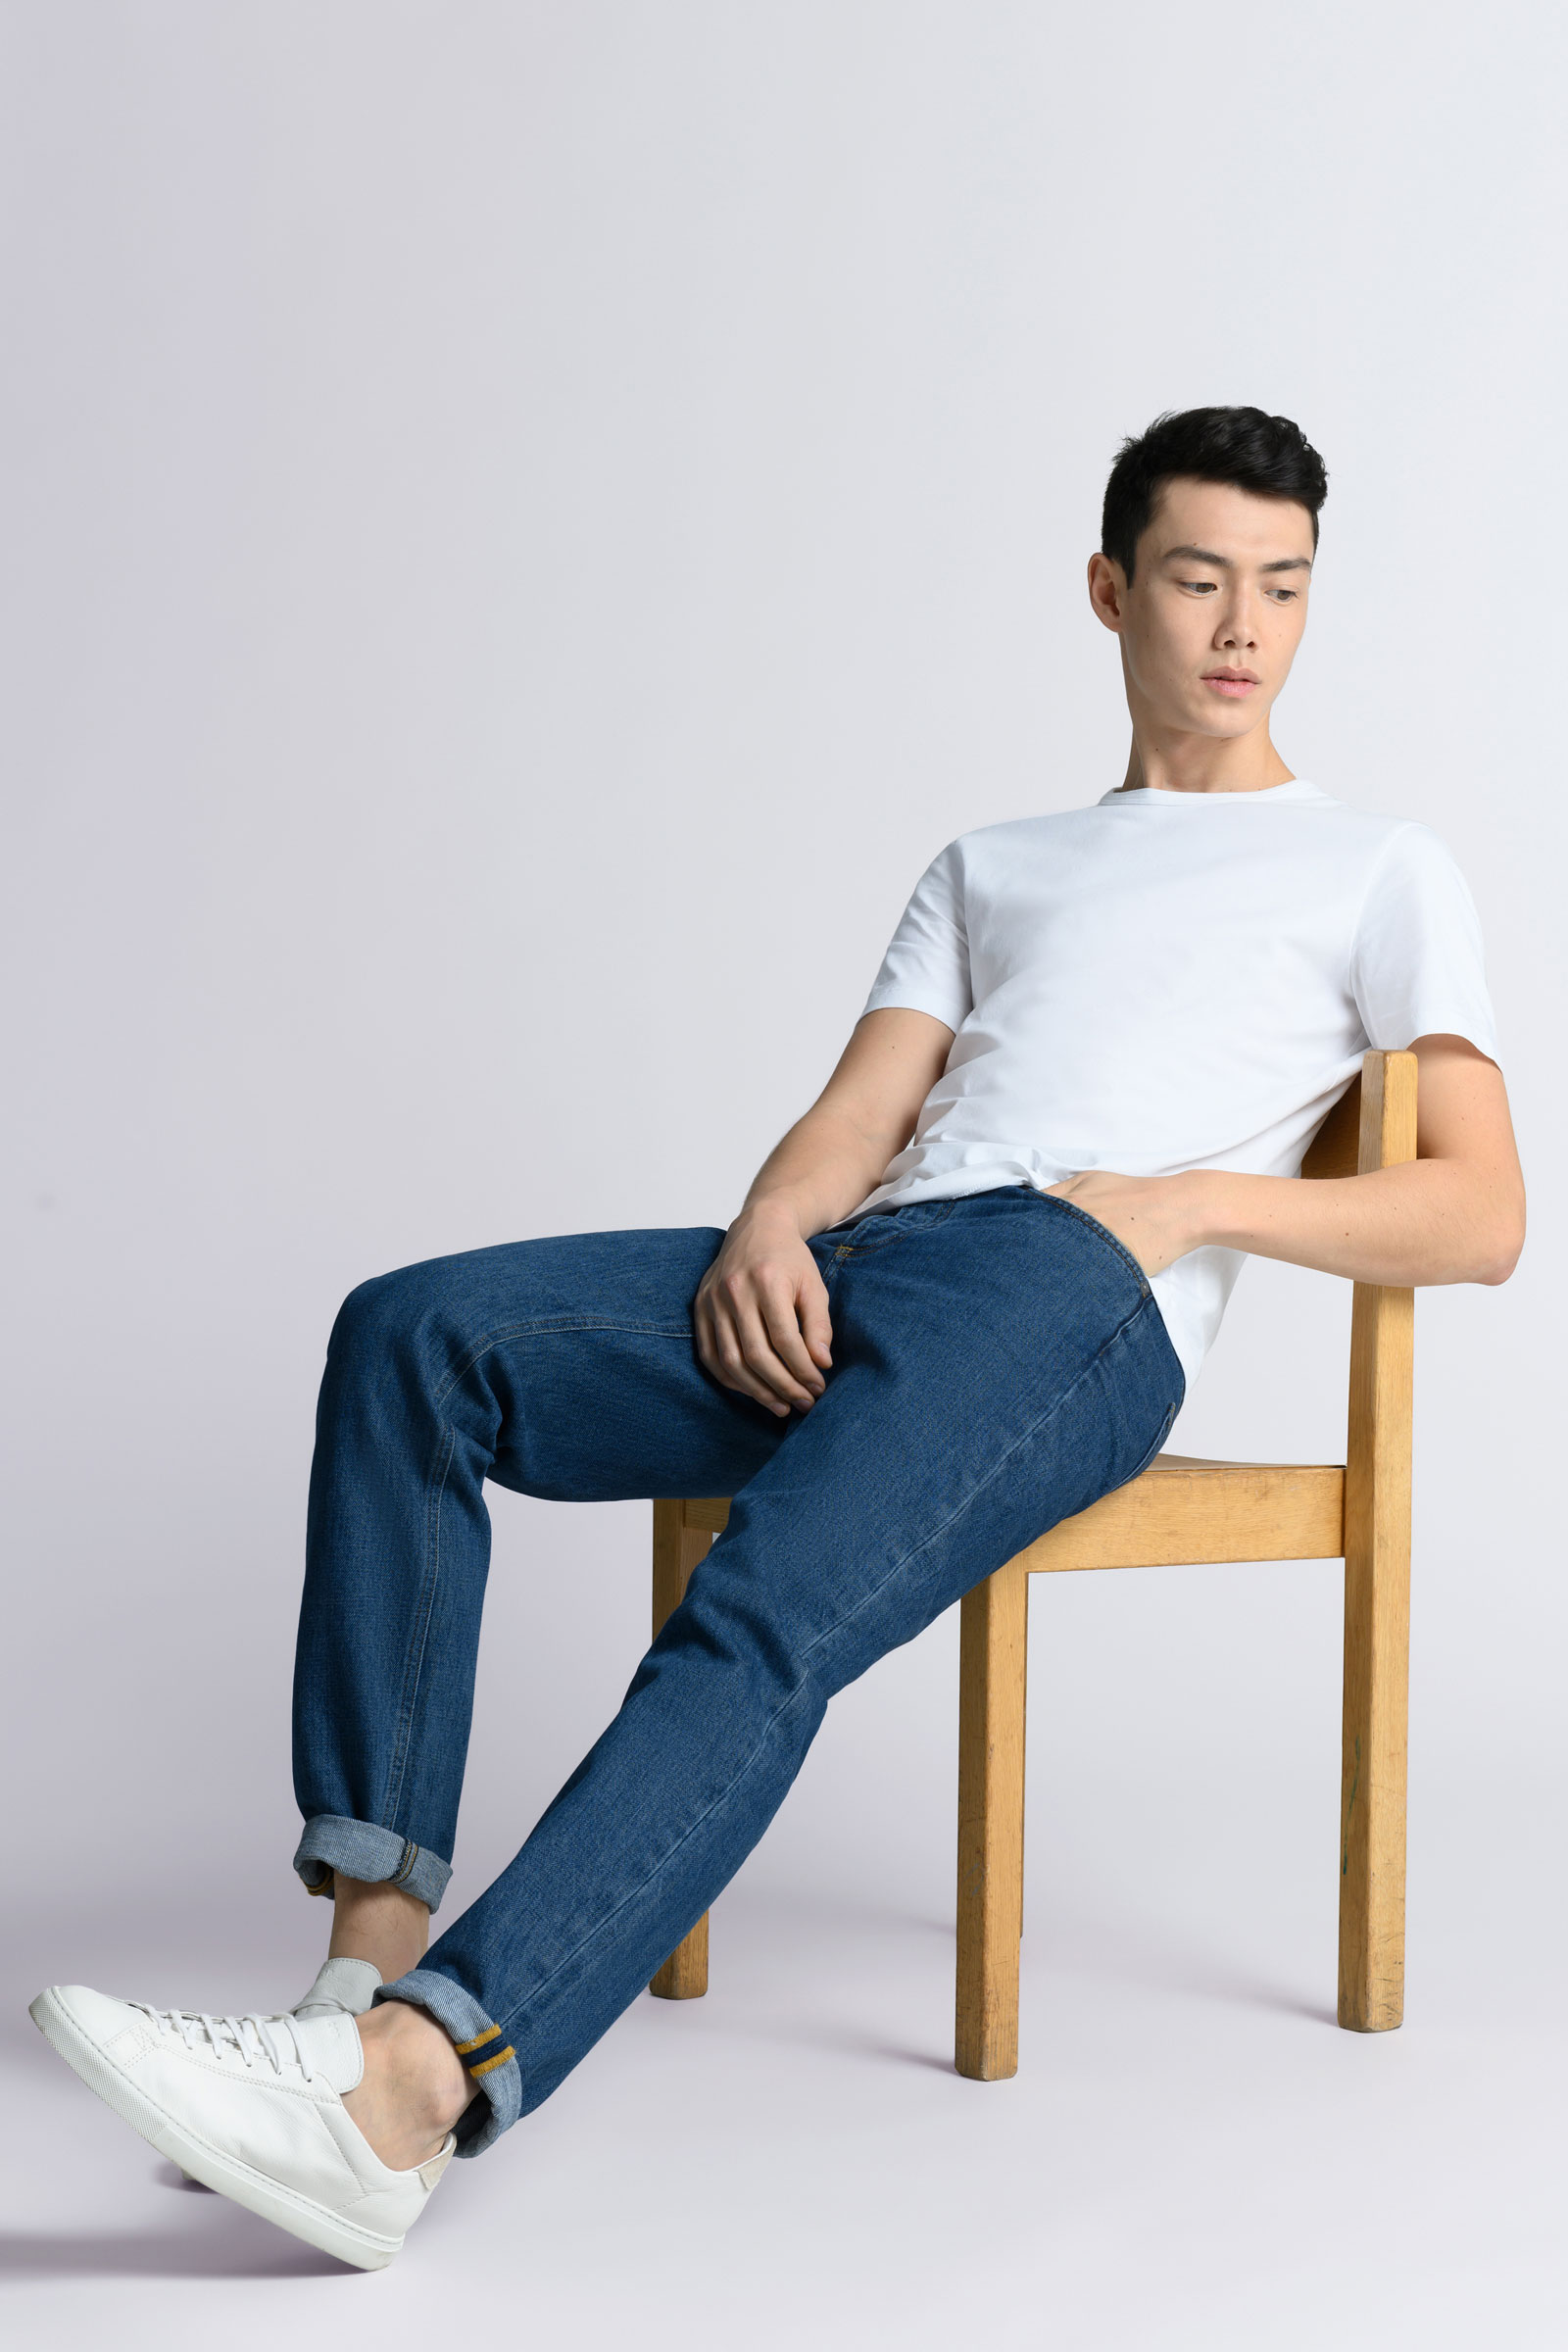 New Washed Denim Jeans & Off-White Essentials from Asket